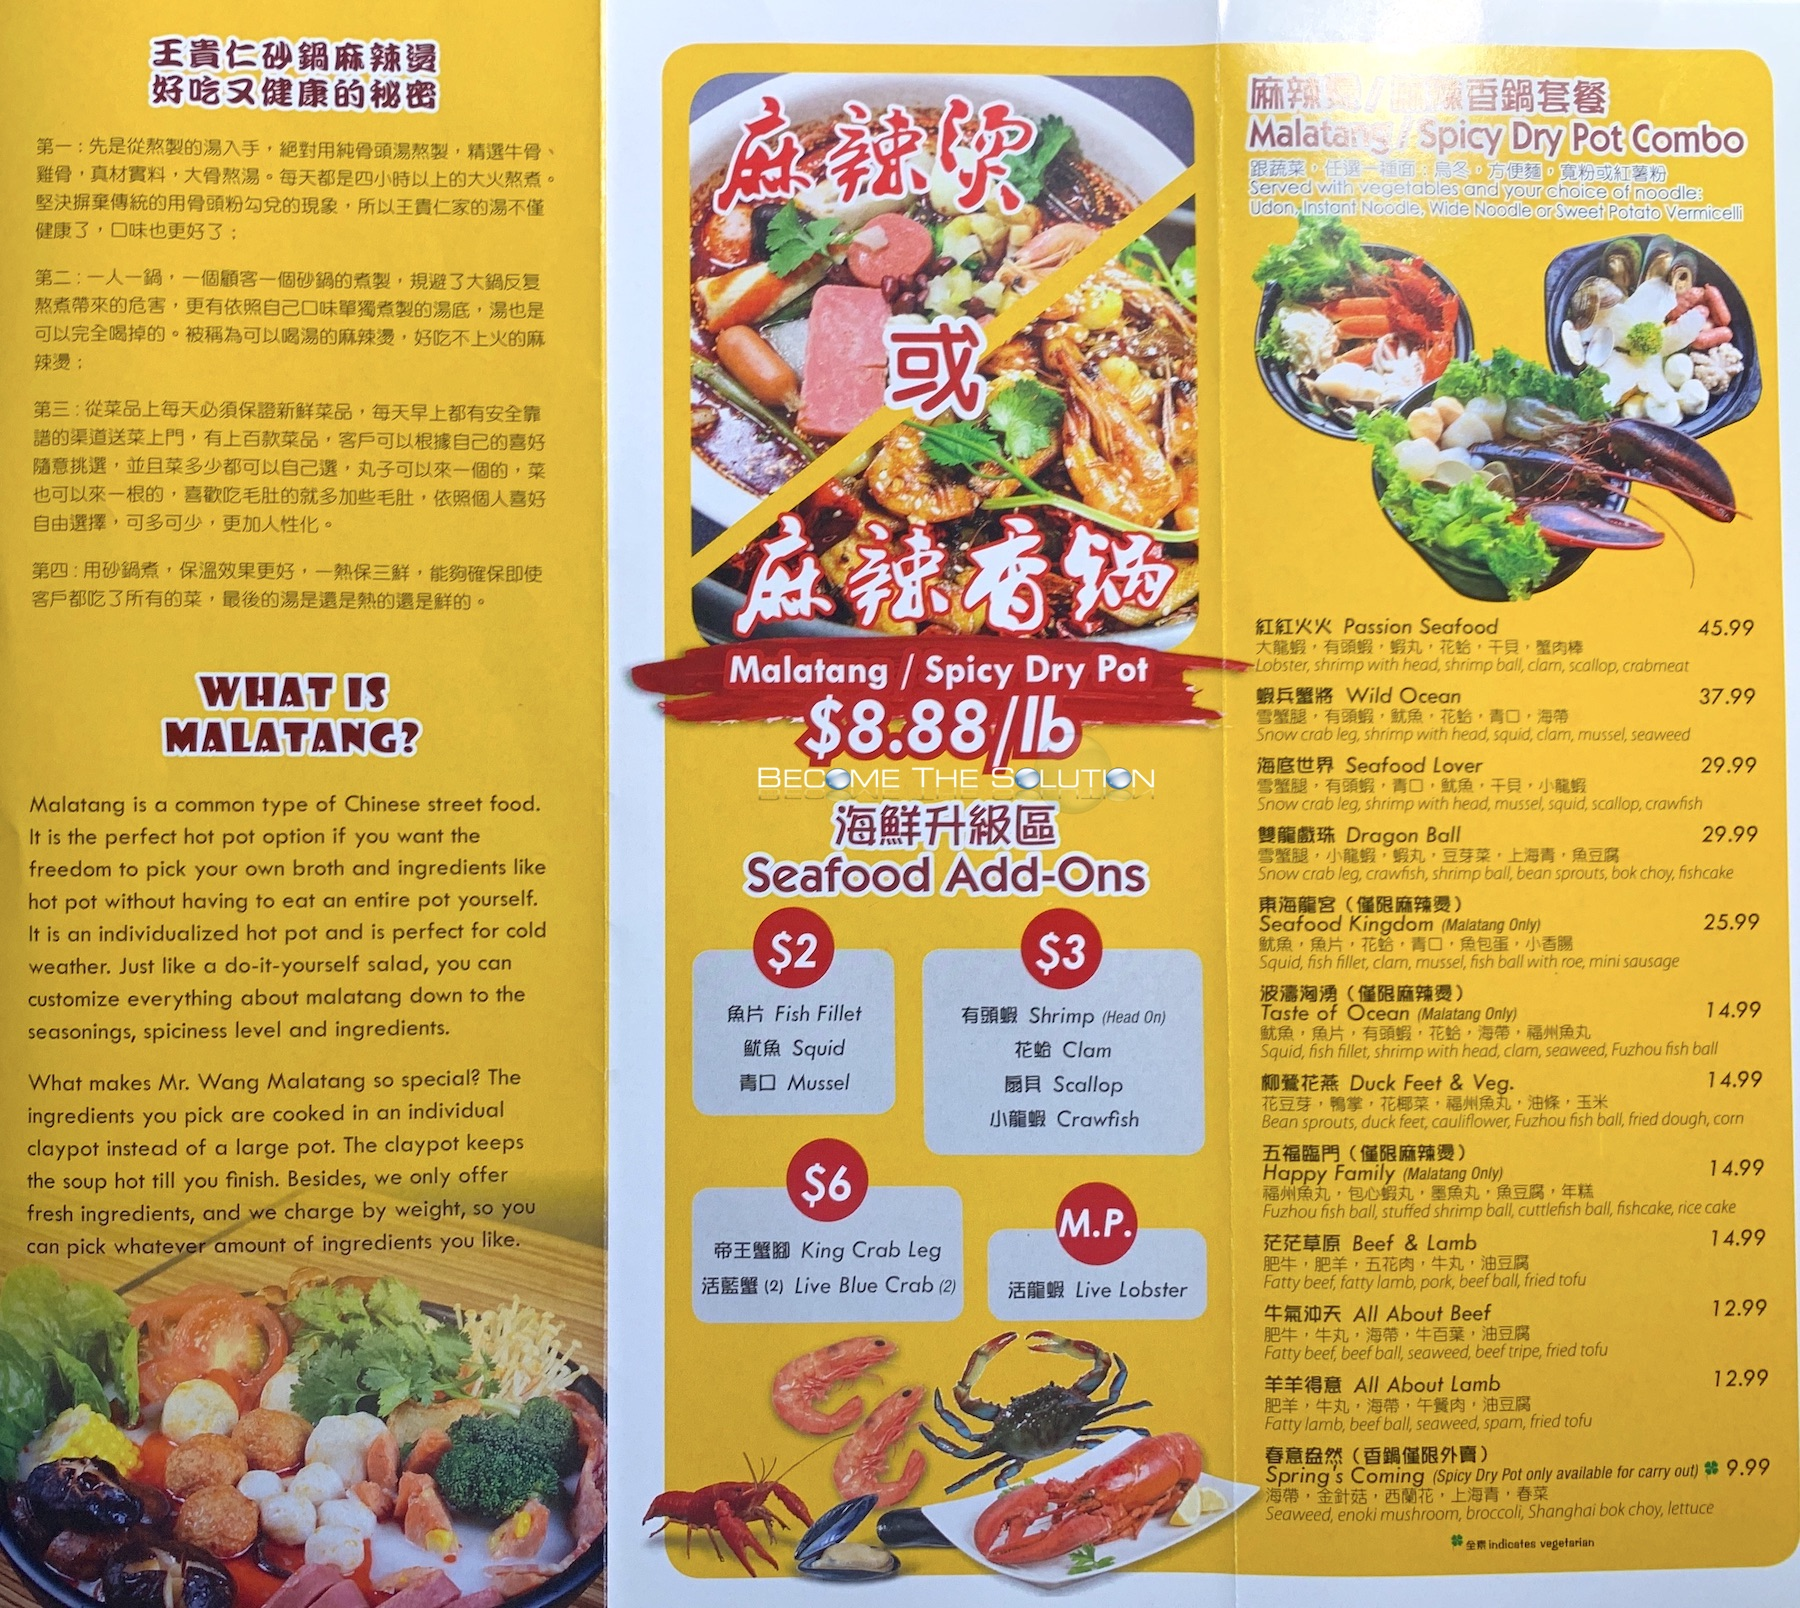 Mr wang malatang chinatown chicago menu 2